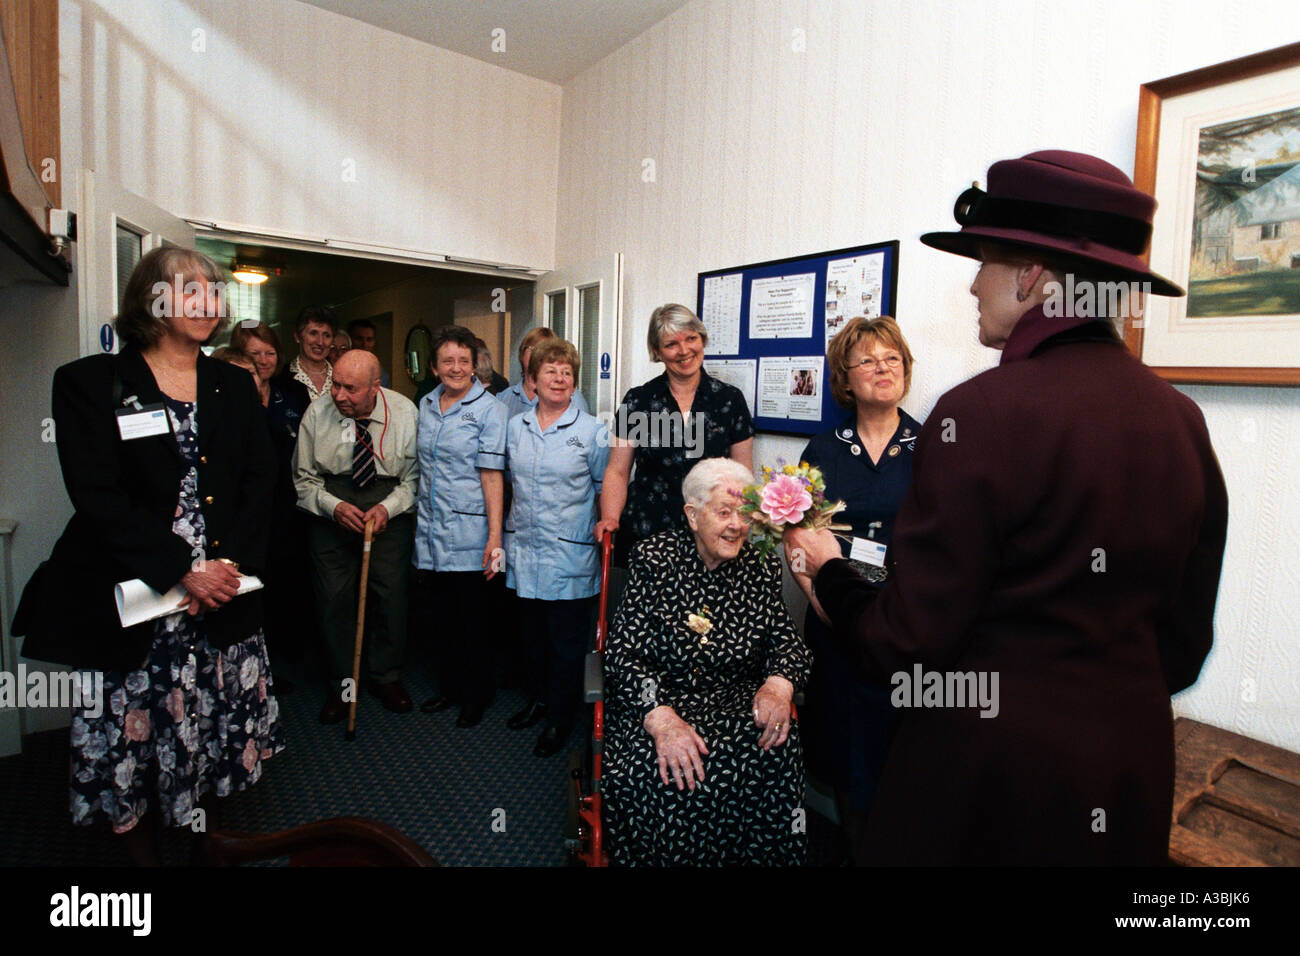 Princess Alexandra after her Royal visit to an old people's home in Malvern, Midlands - Stock Image